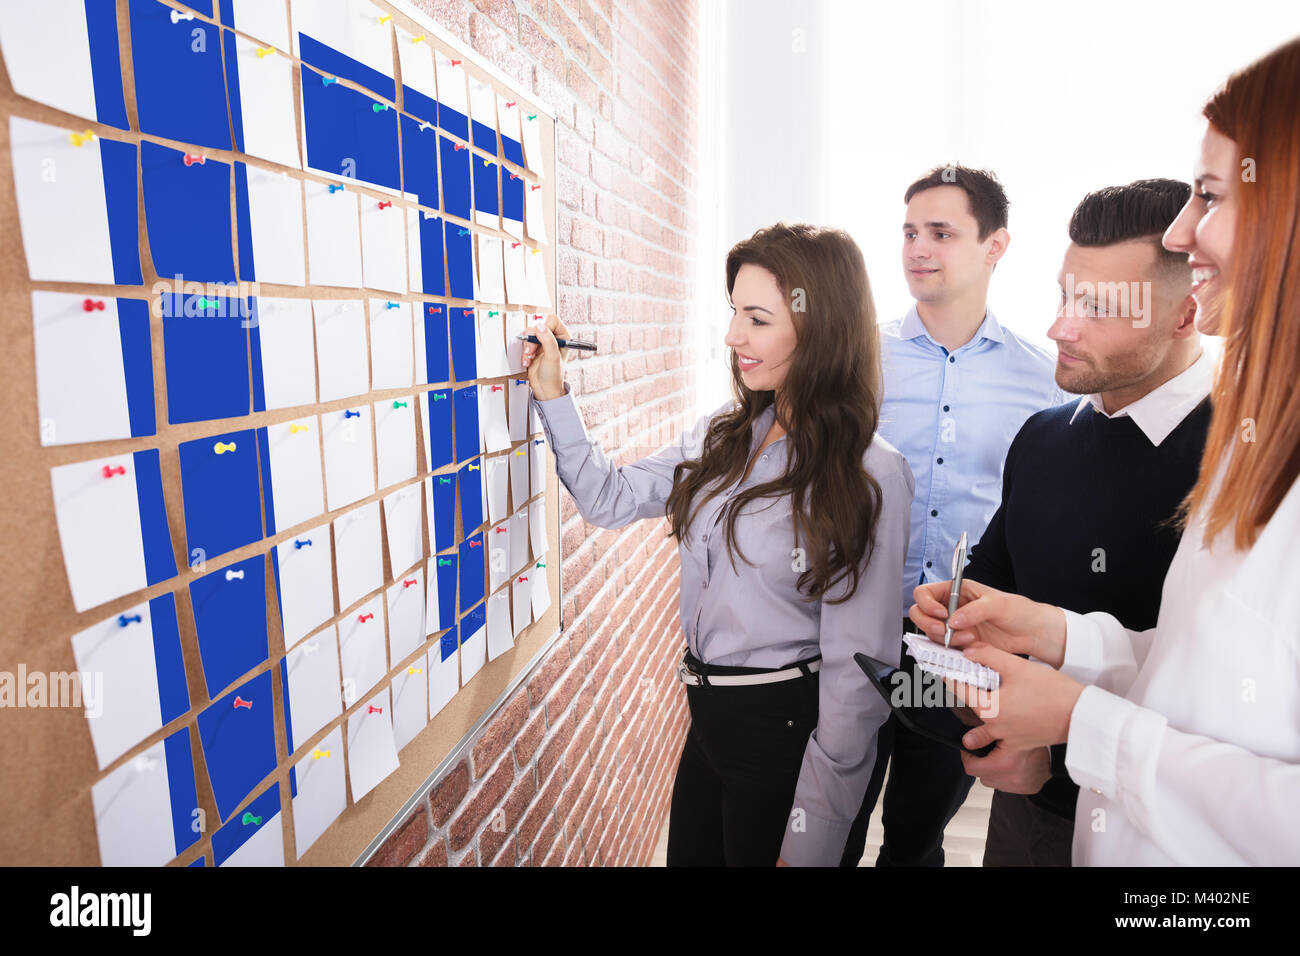 Group Of Business People Planning Information Technology On Adhesive Notes Over The Corkboard